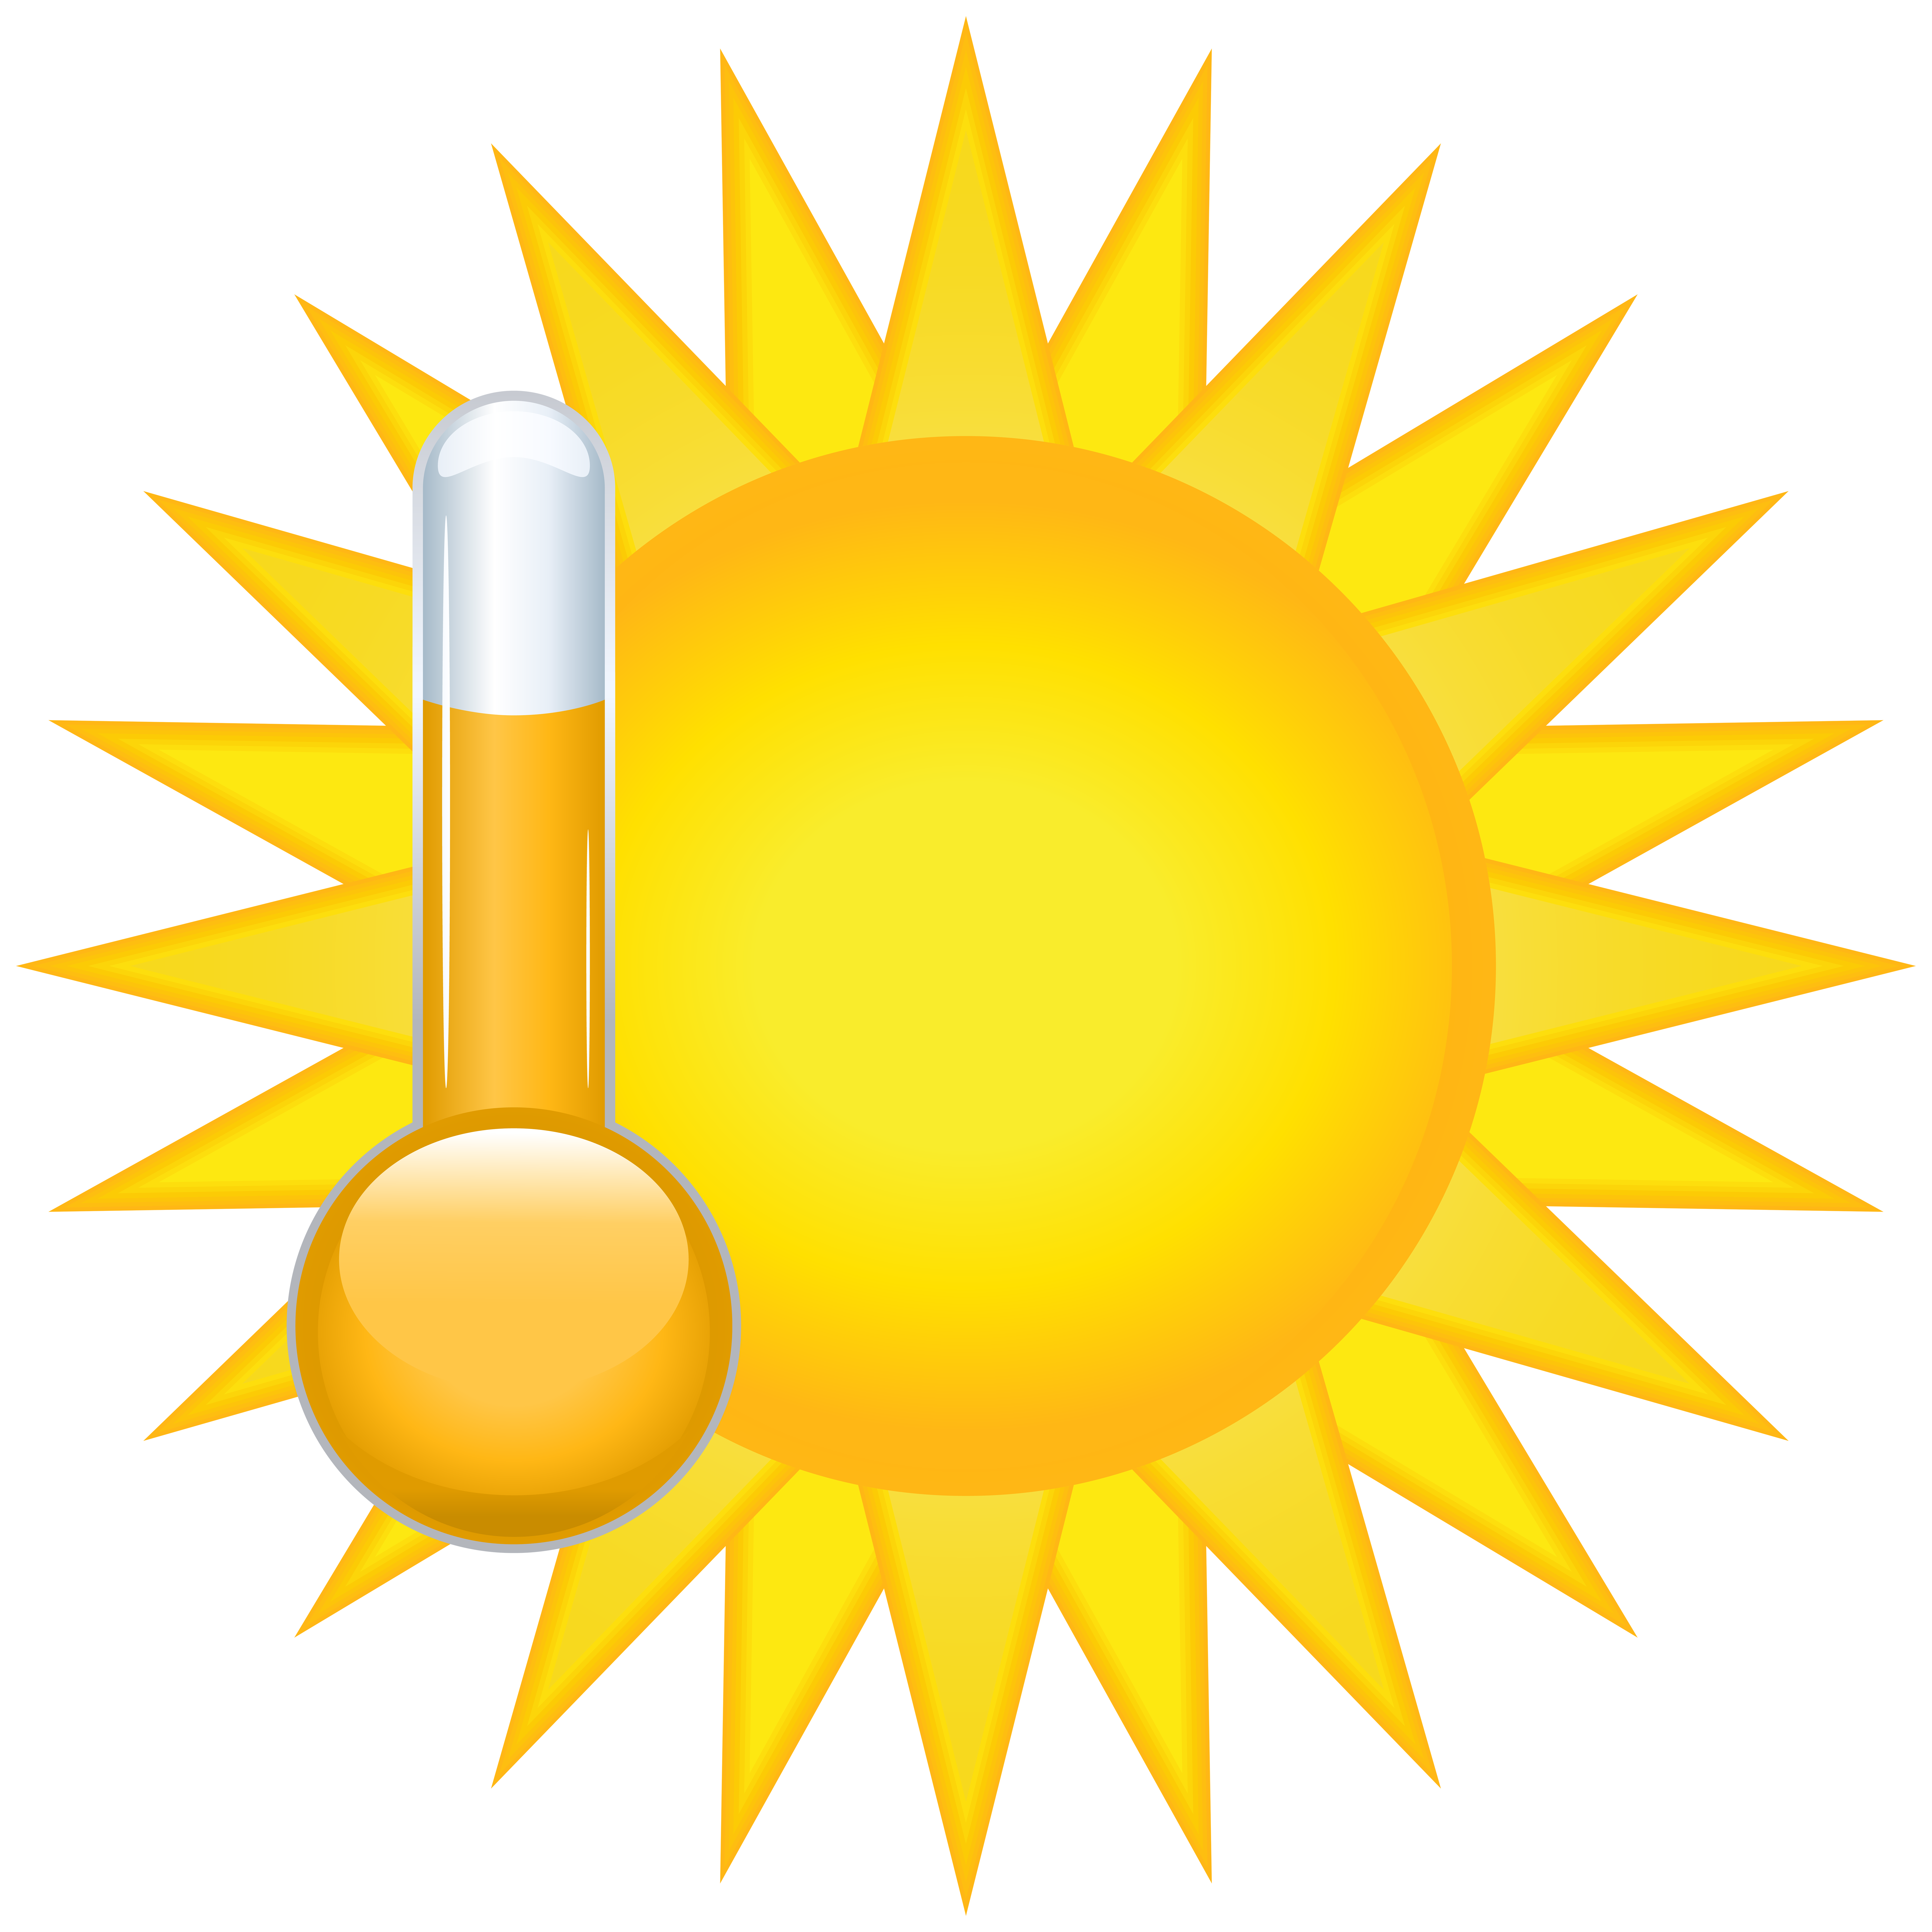 8000x8000 Sunny Weather Icon Png Clip Art